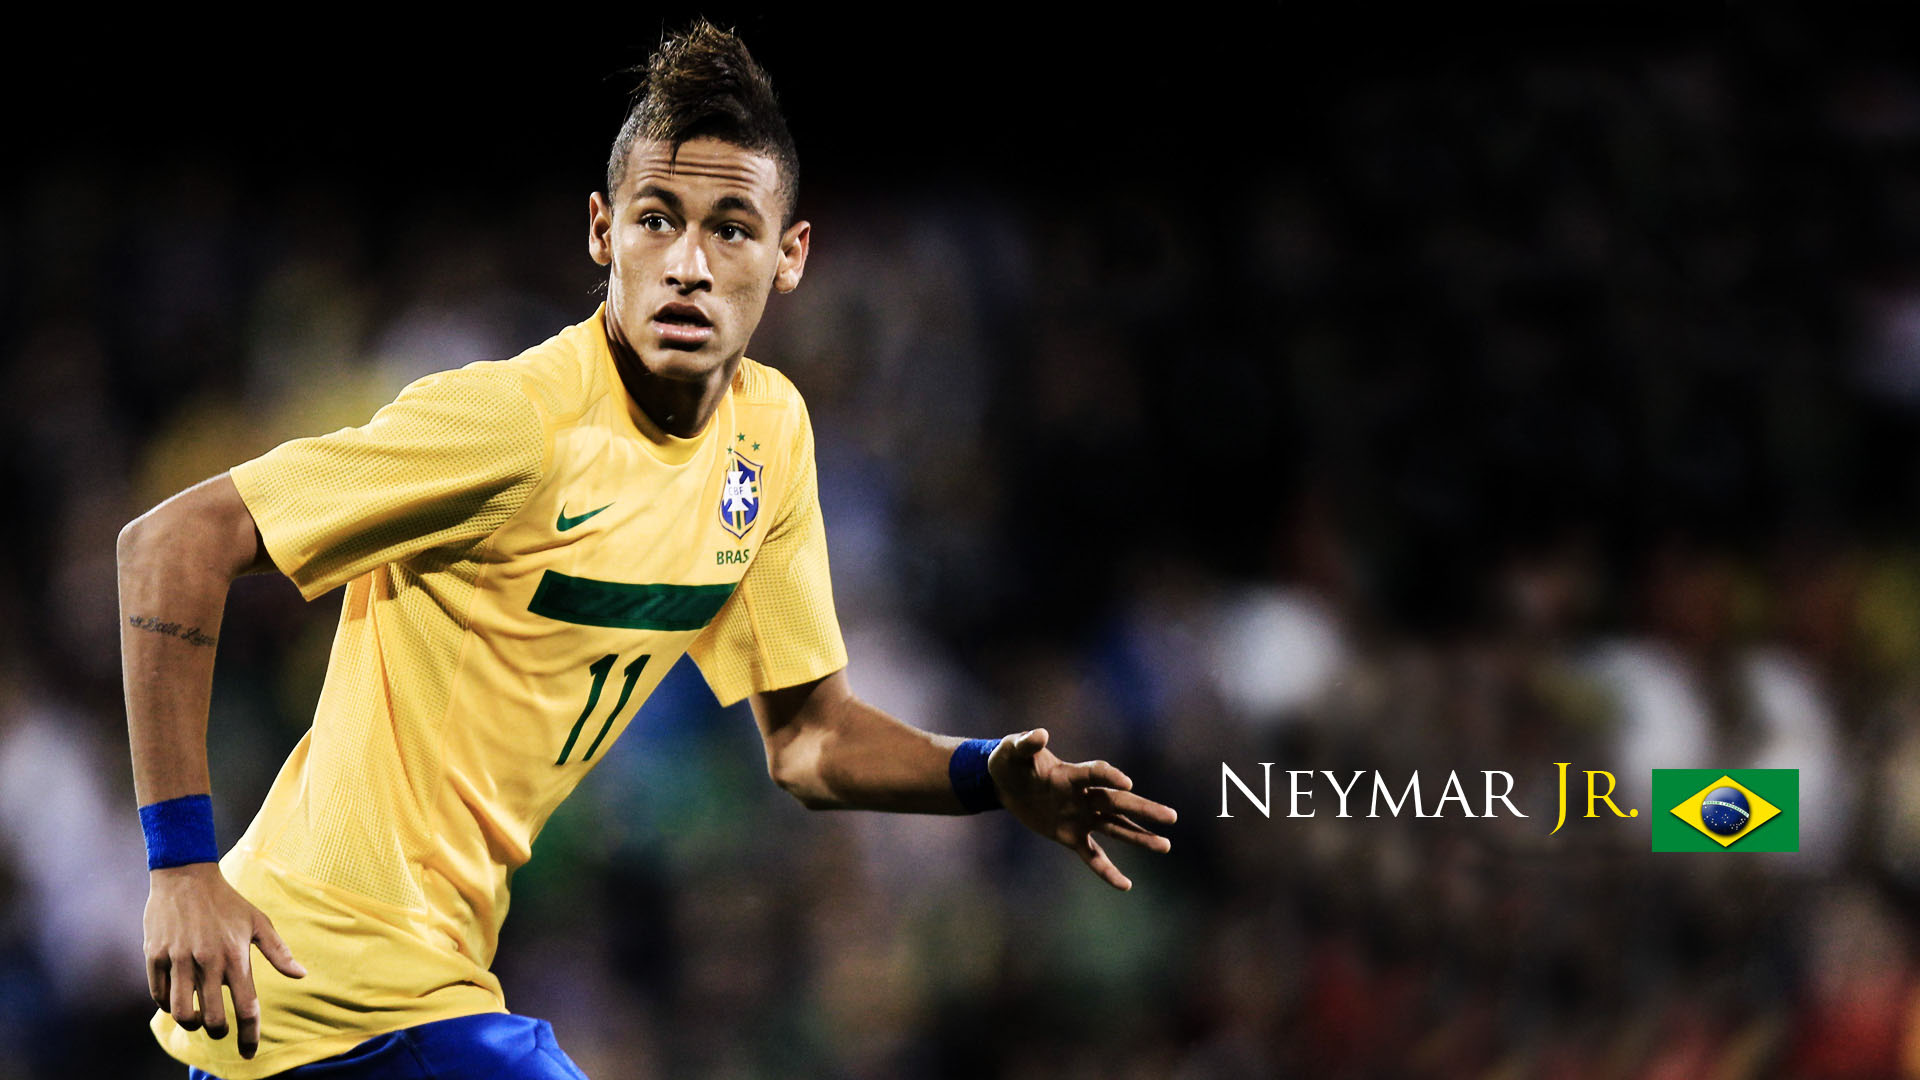 Wallpaper 3d Anime Boy Neymar Wallpapers Hd Pixelstalk Net